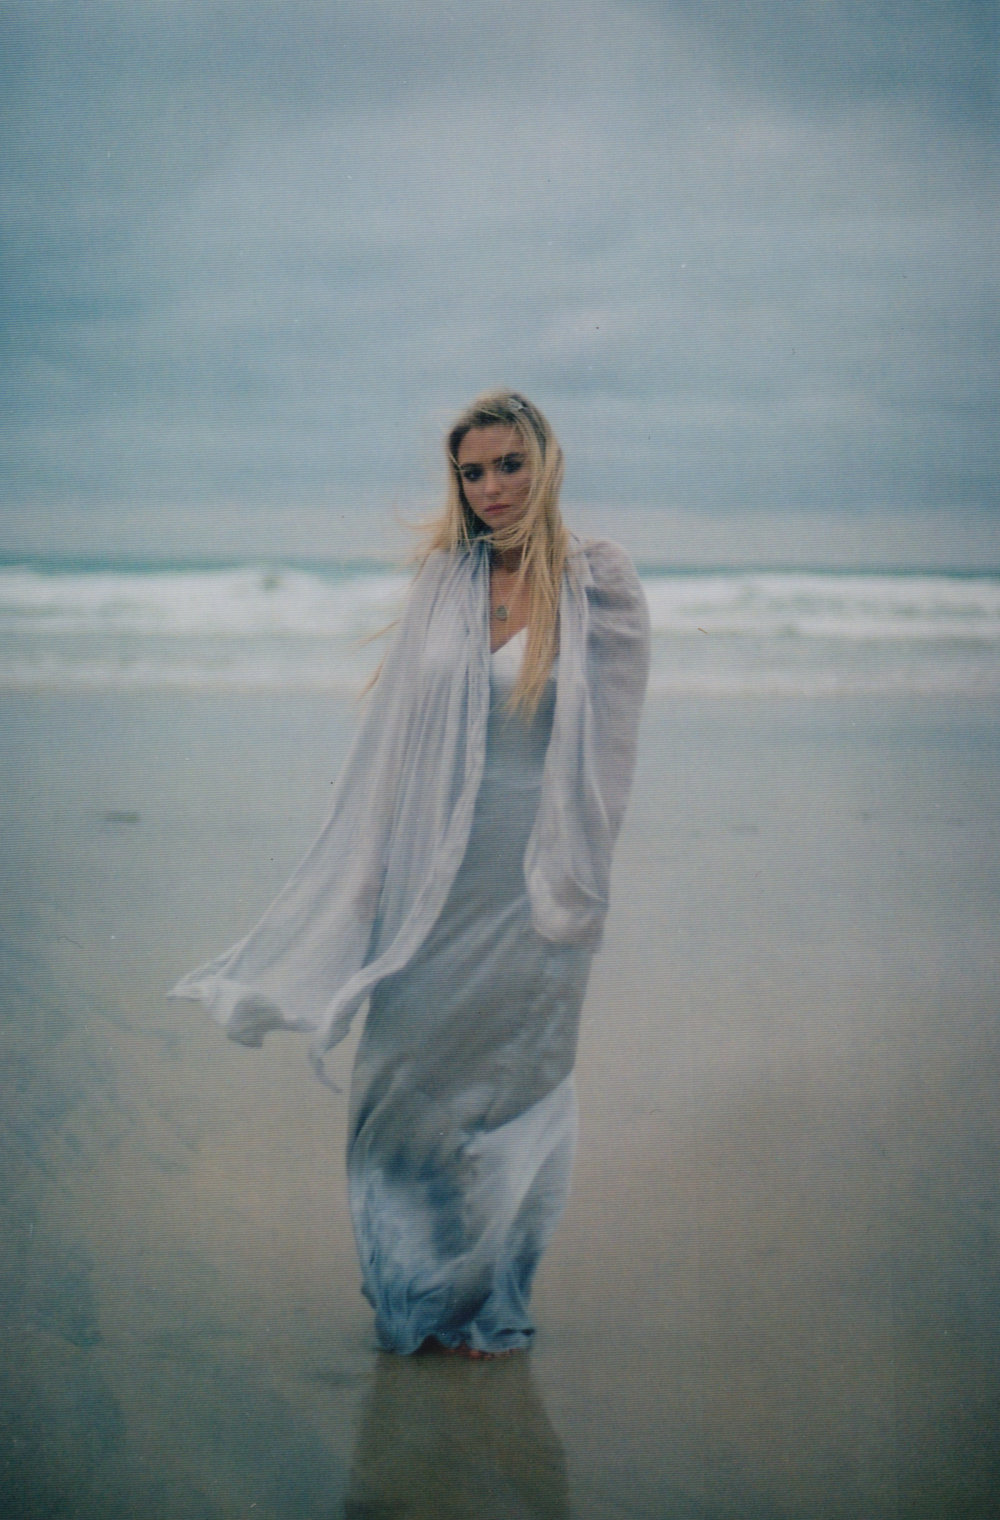 Lucie On The Beach | Bridal Editorial | www.oliviablogs.com